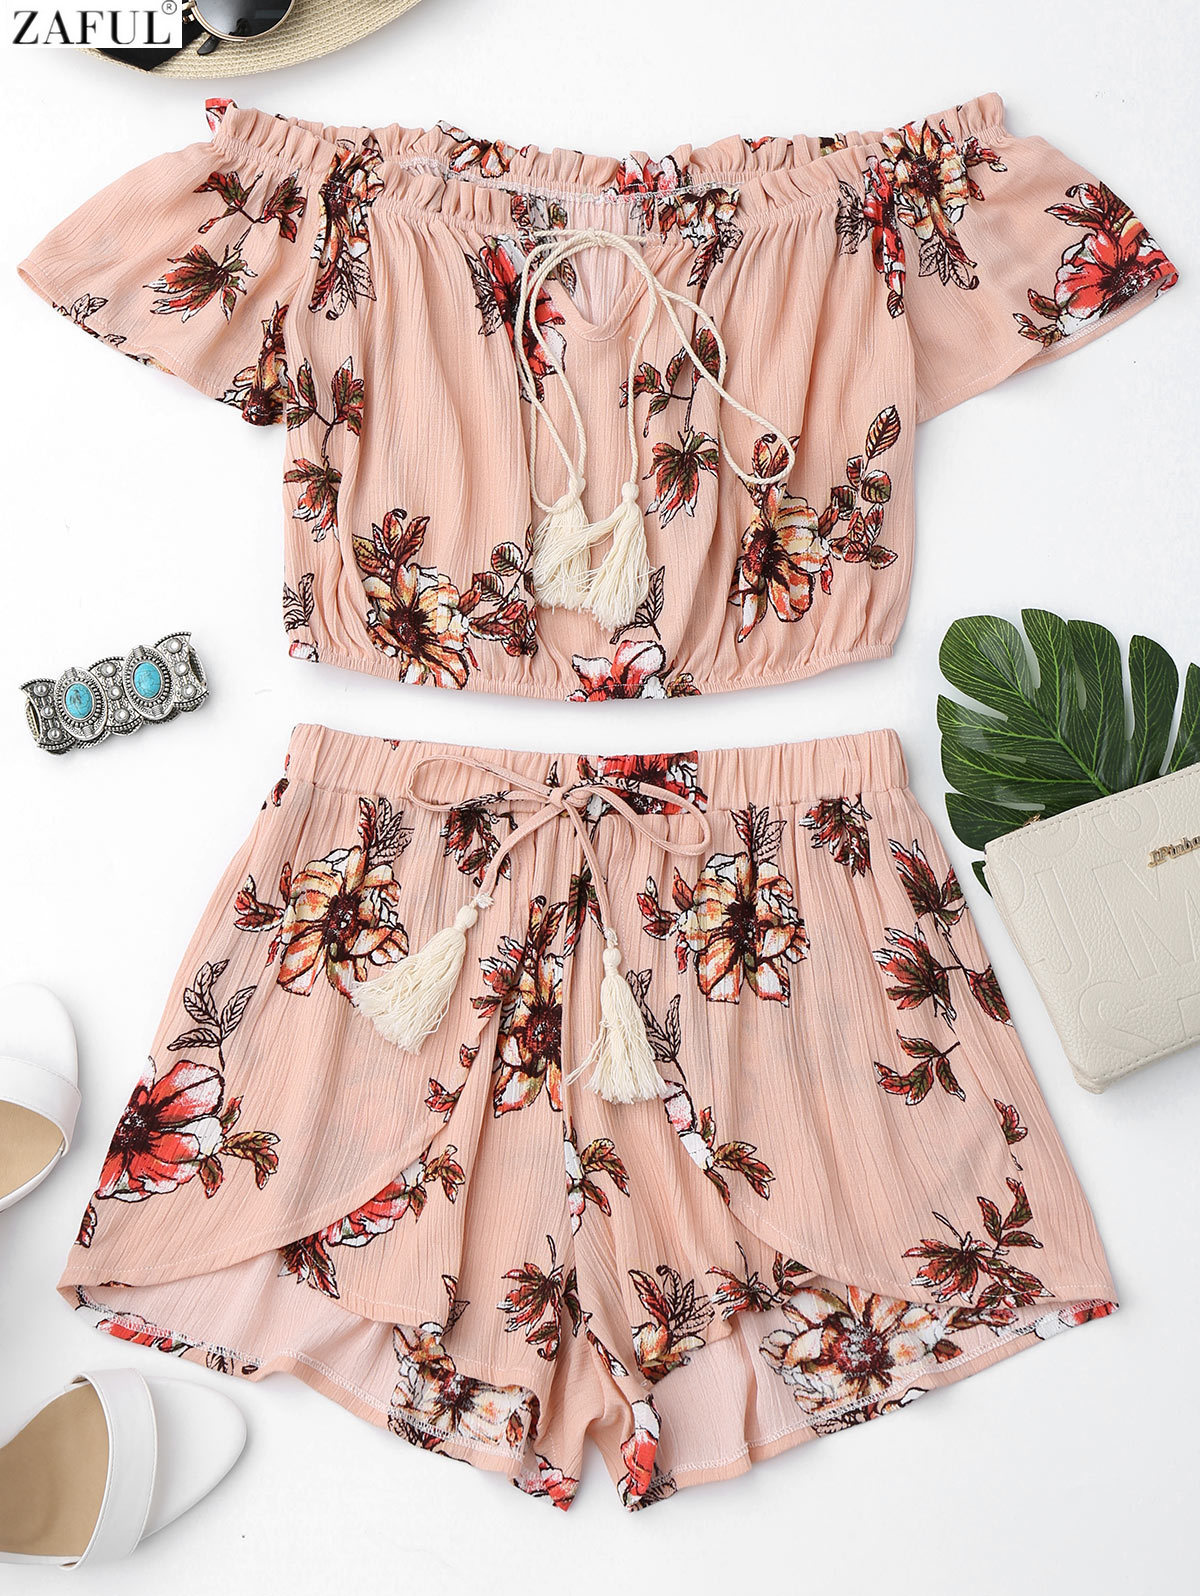 ZAFUL New Off Shoulder Ruffles Top and Tulip Shorts Women Summer Two Piece Set Beach Cover Up Off Shouldr Top Self Tie Shorts цена и фото